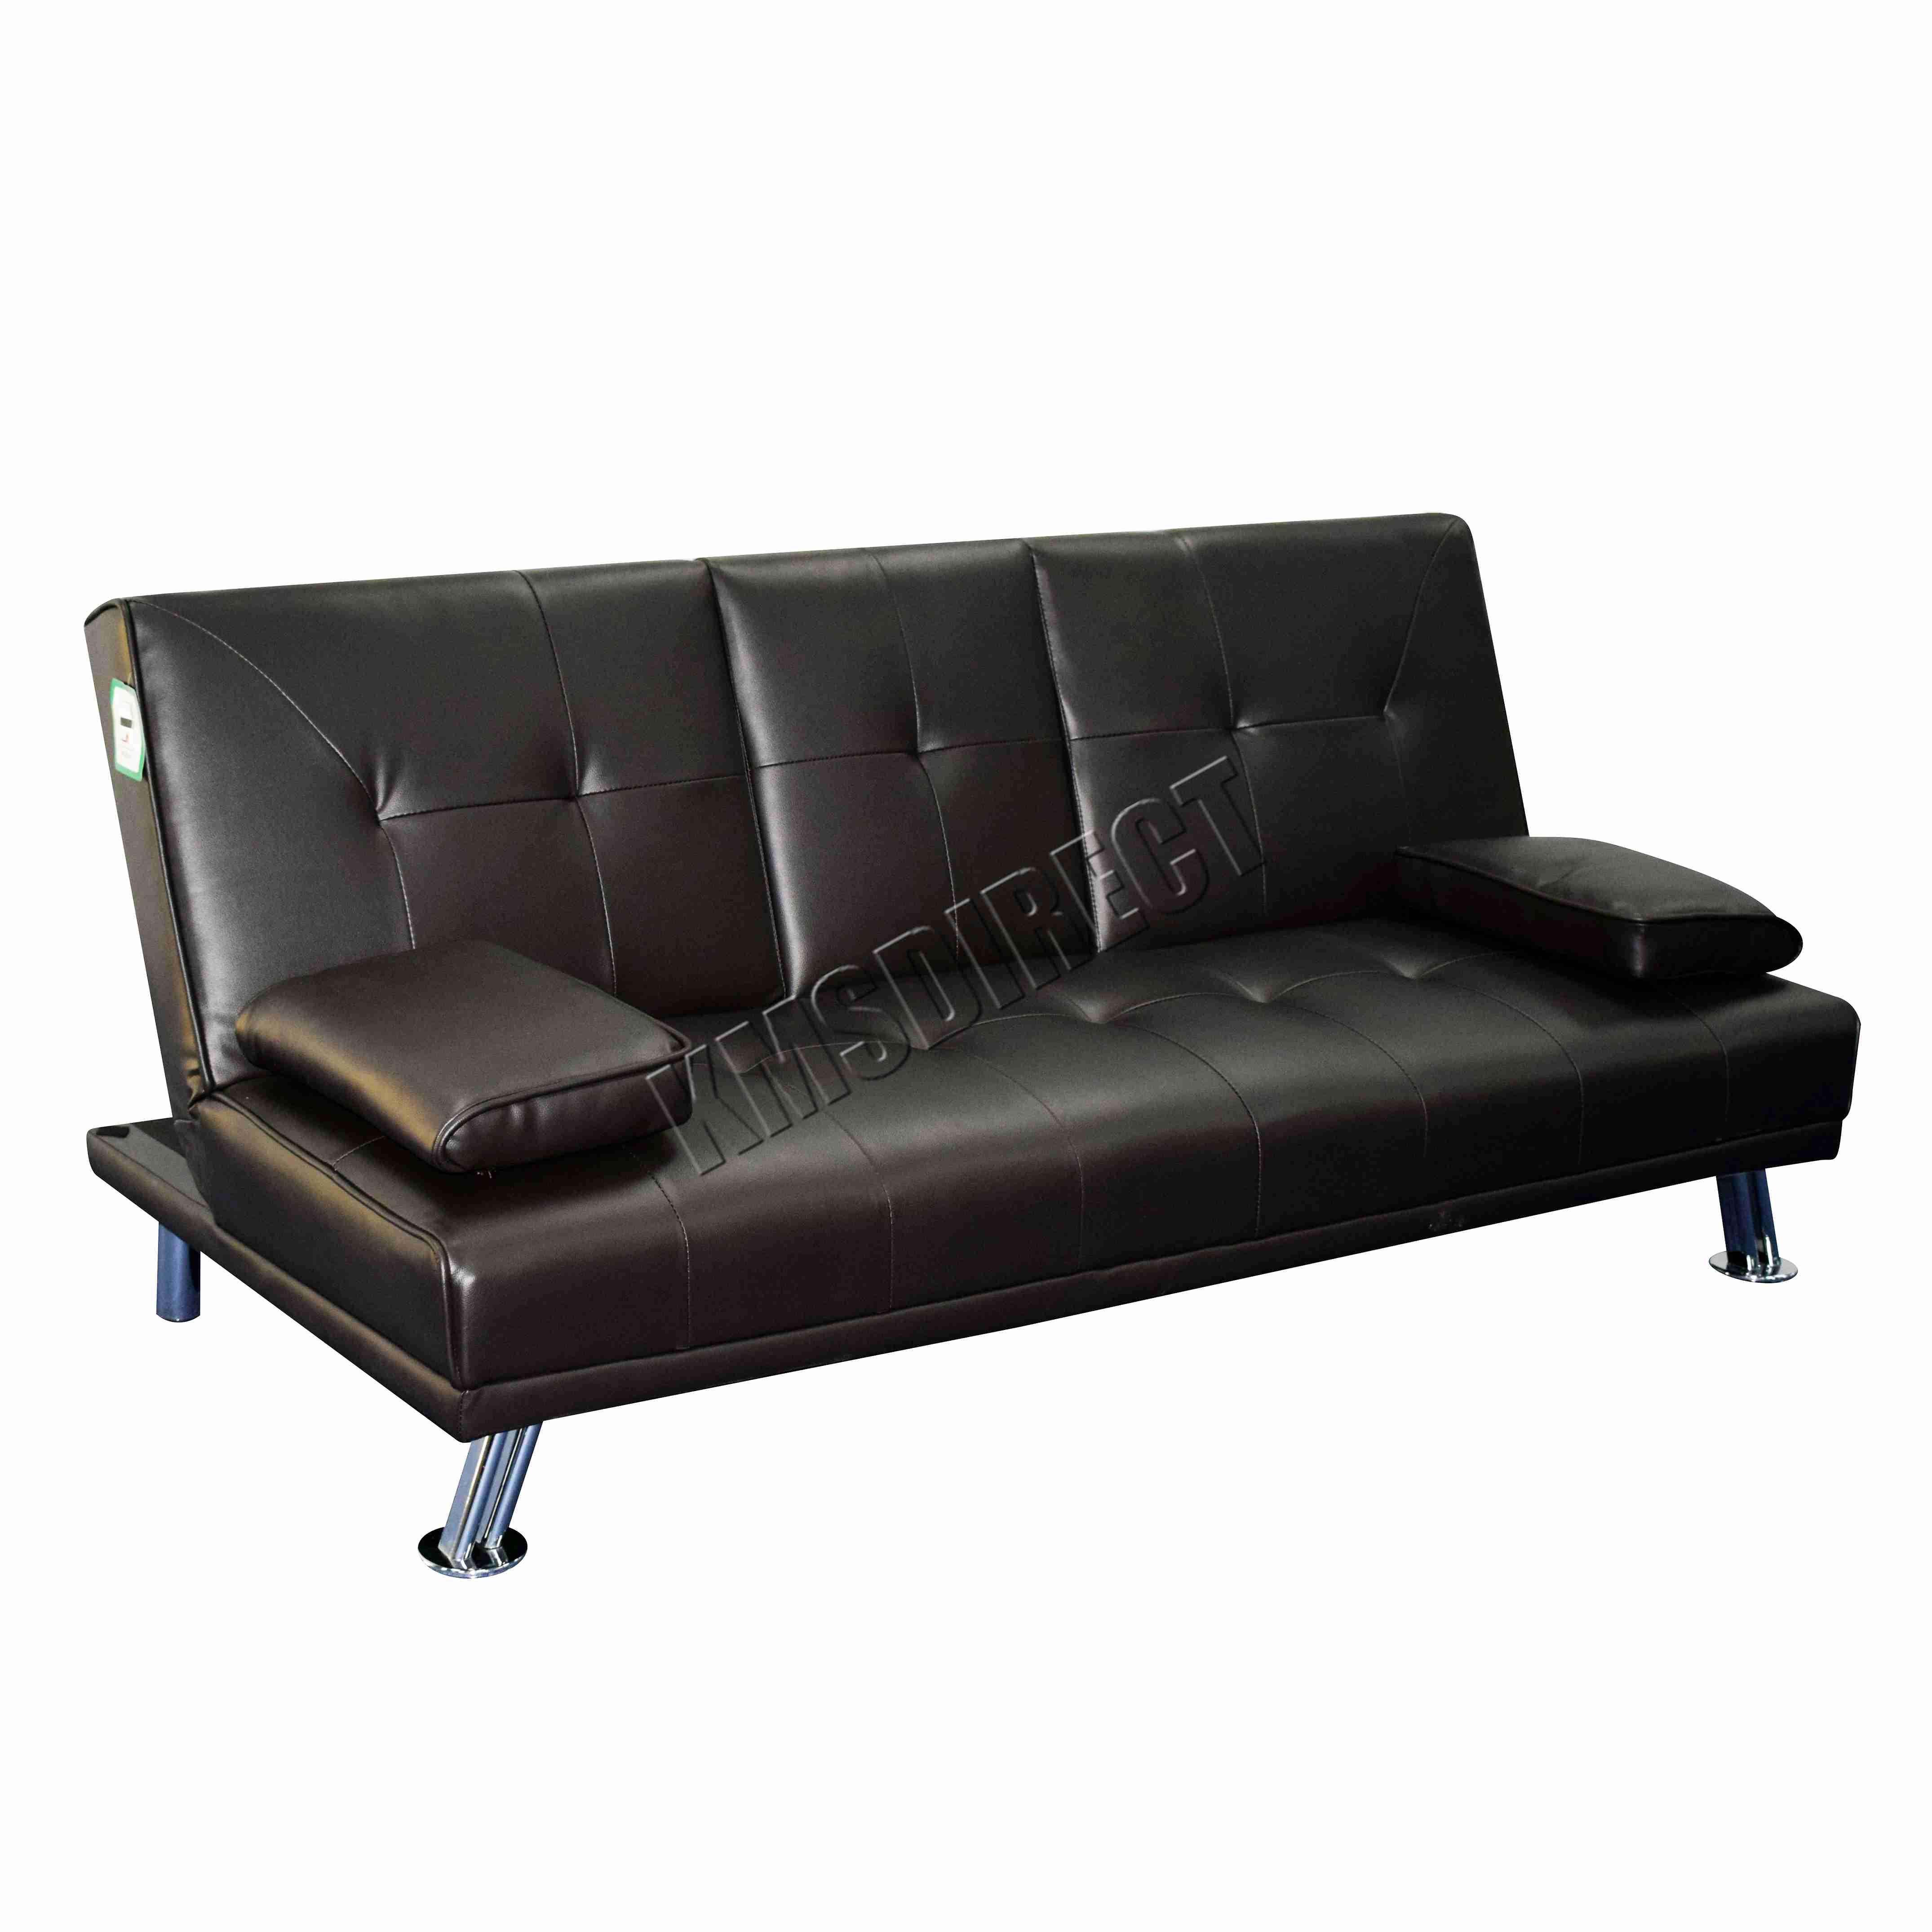 Westwood Faux Leather Manhattan Sofa Bed Recliner 3